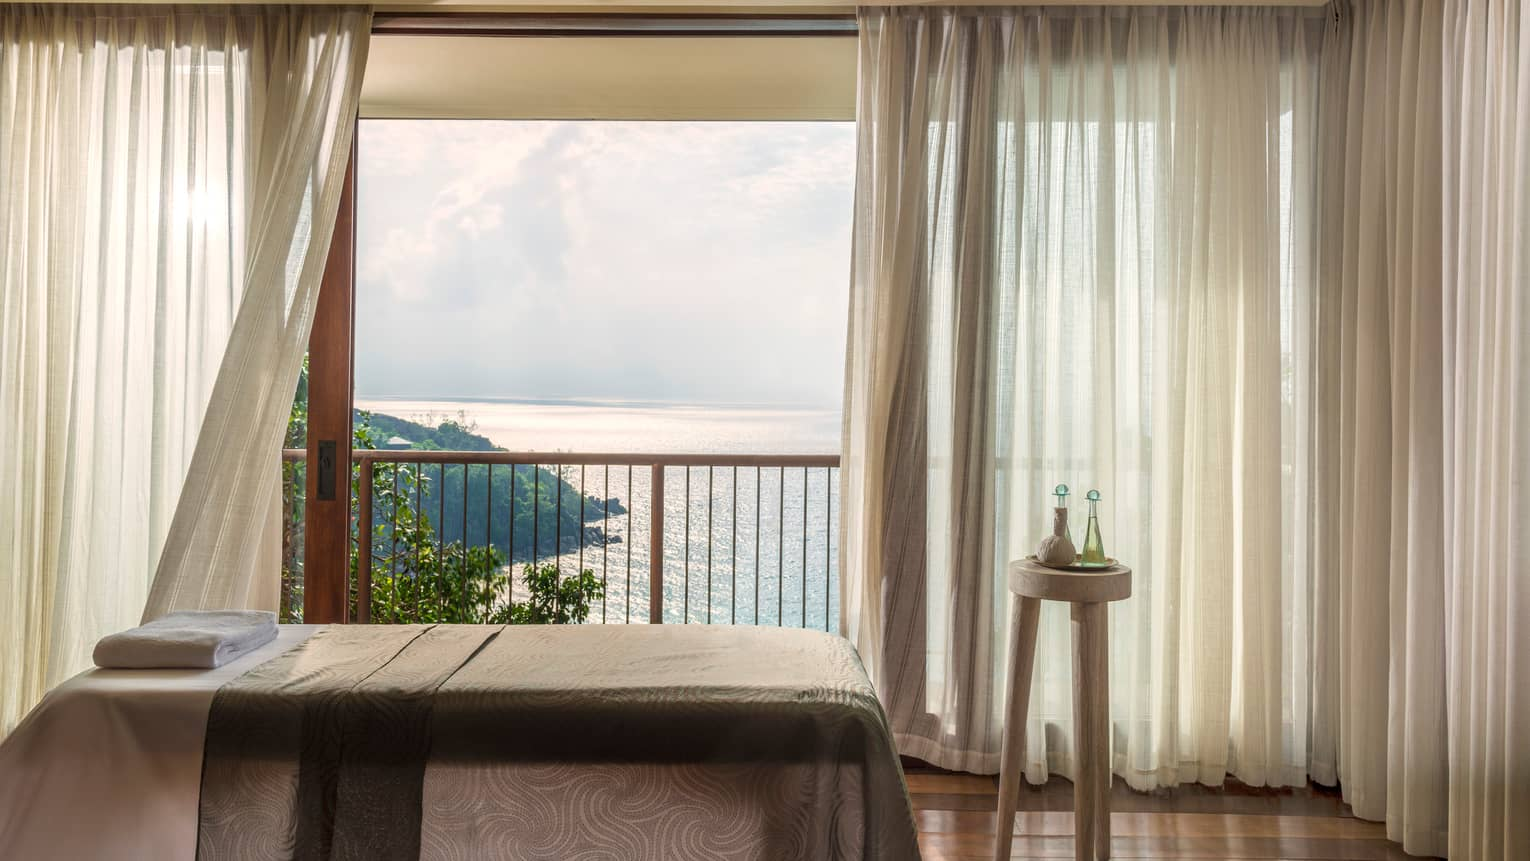 Massage bed in front of open window with long white curtains, ocean view